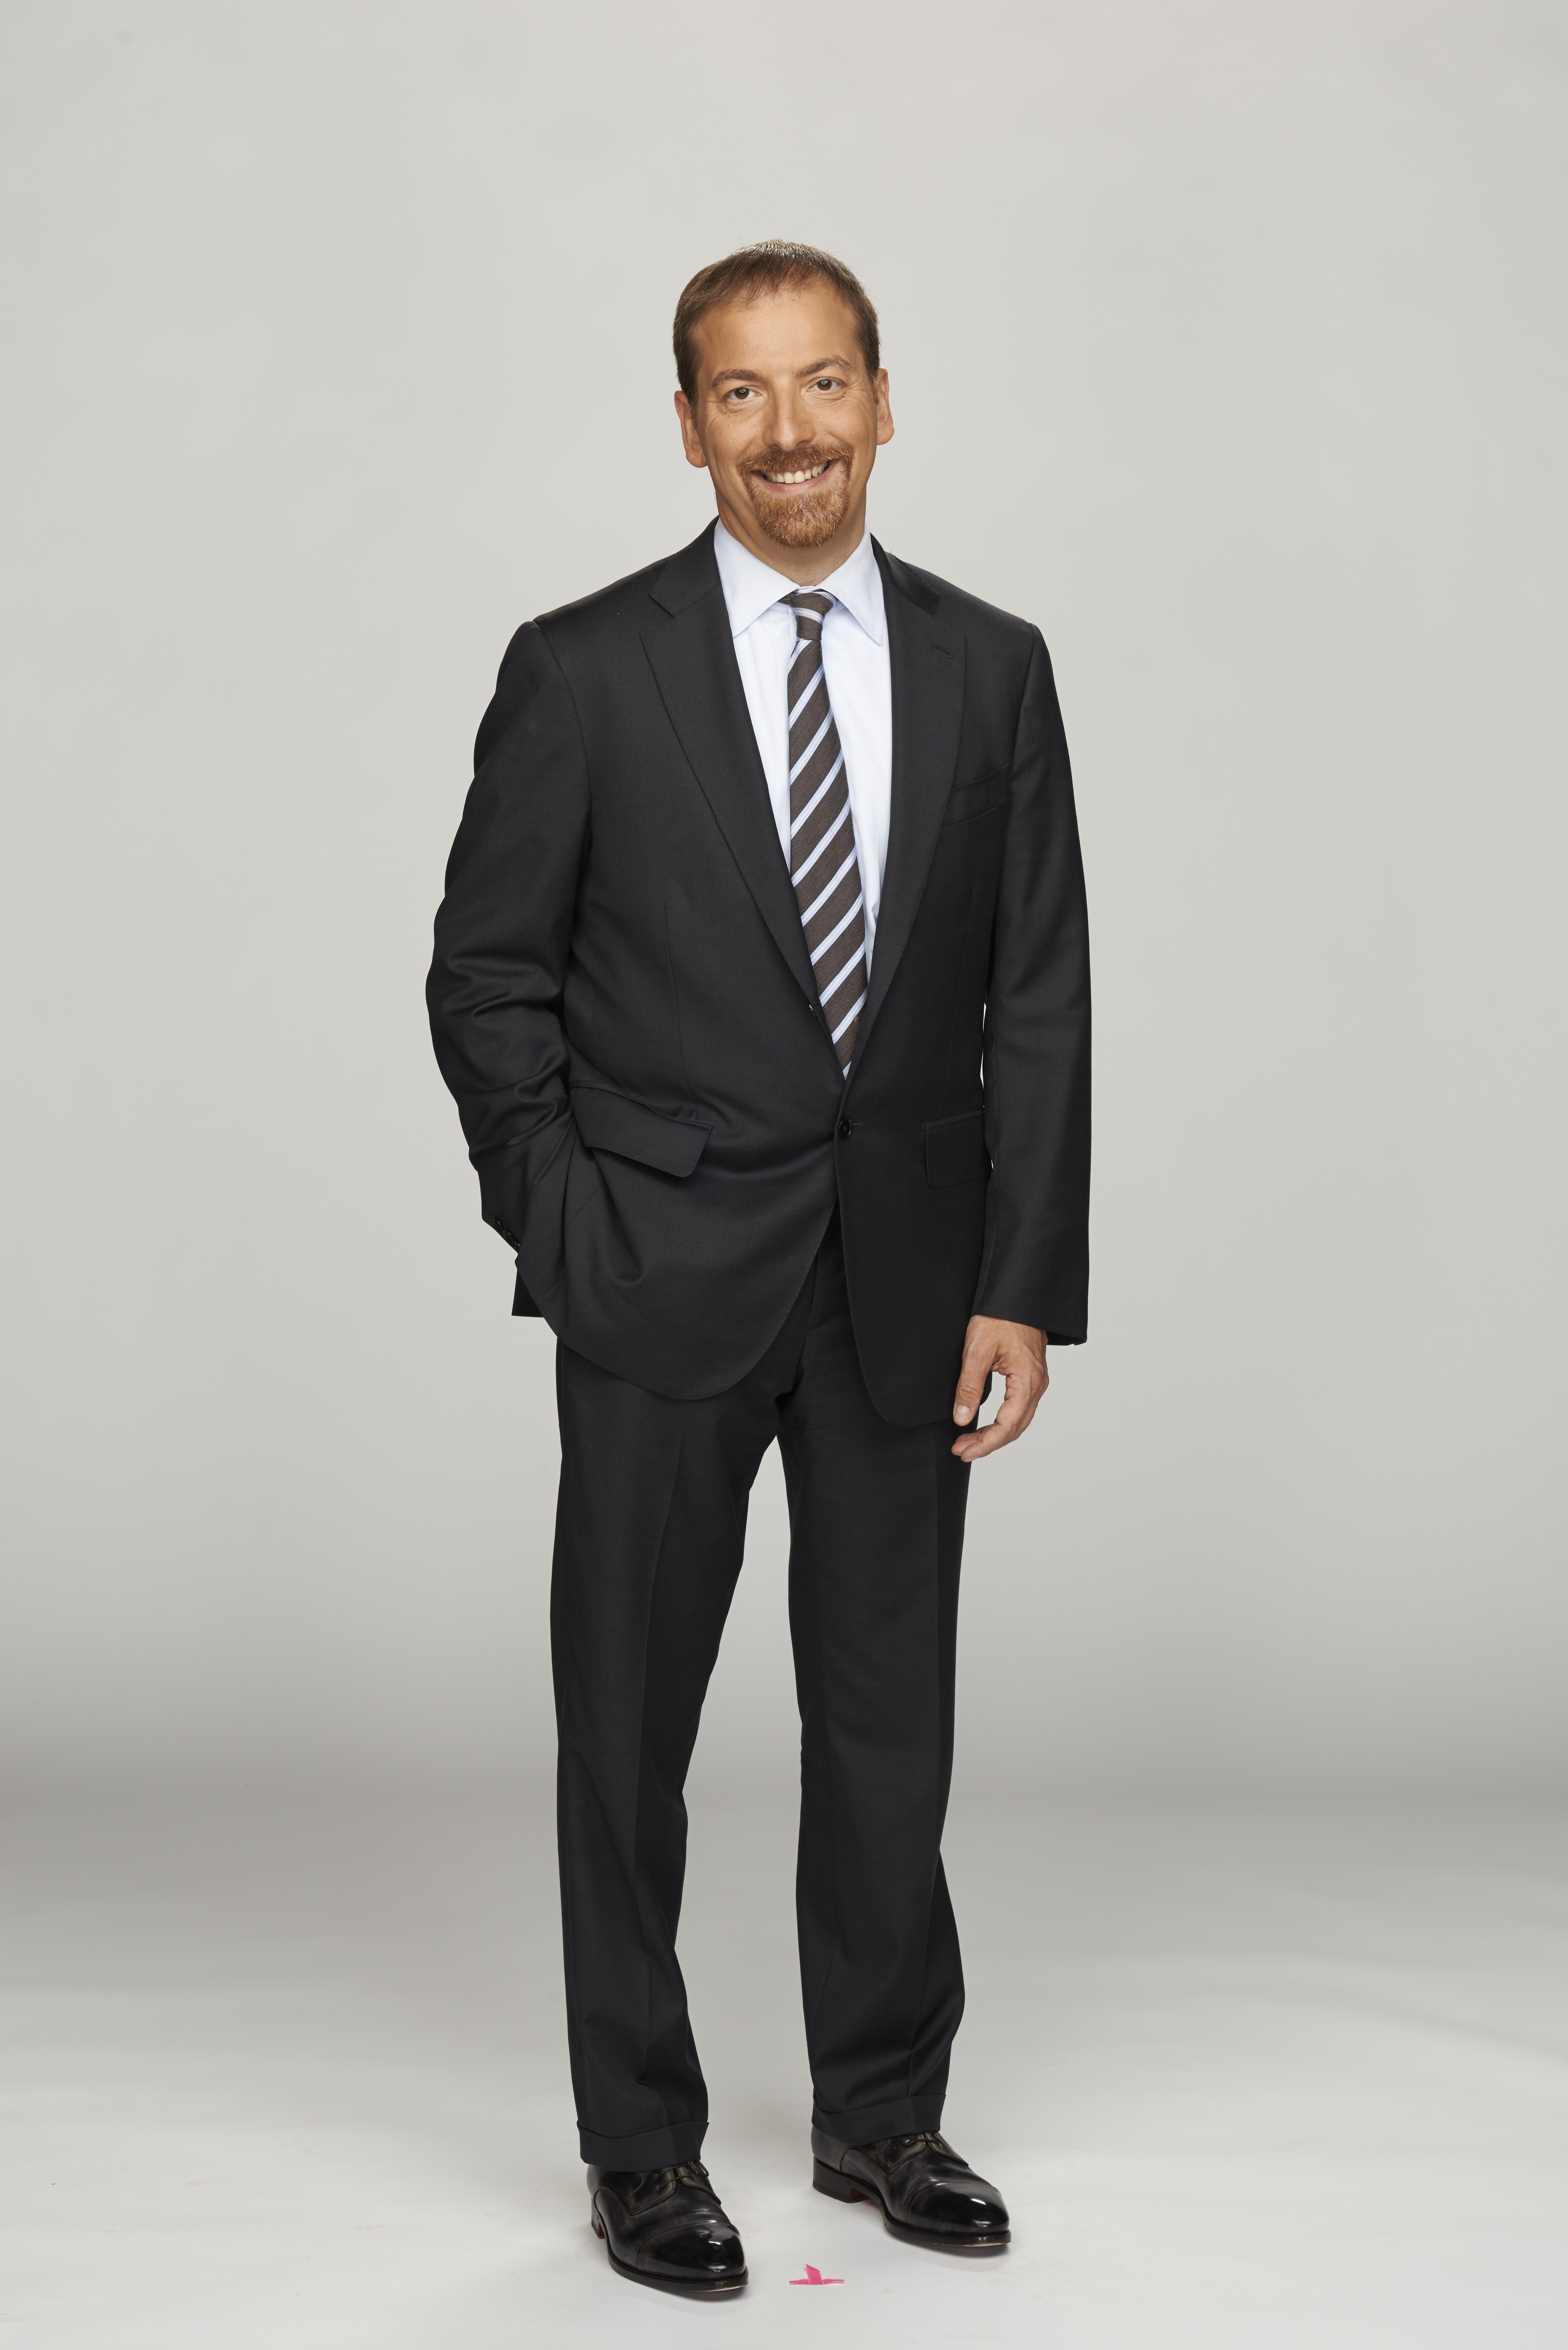 Meet the Press - Season 67 - Chuck Todd